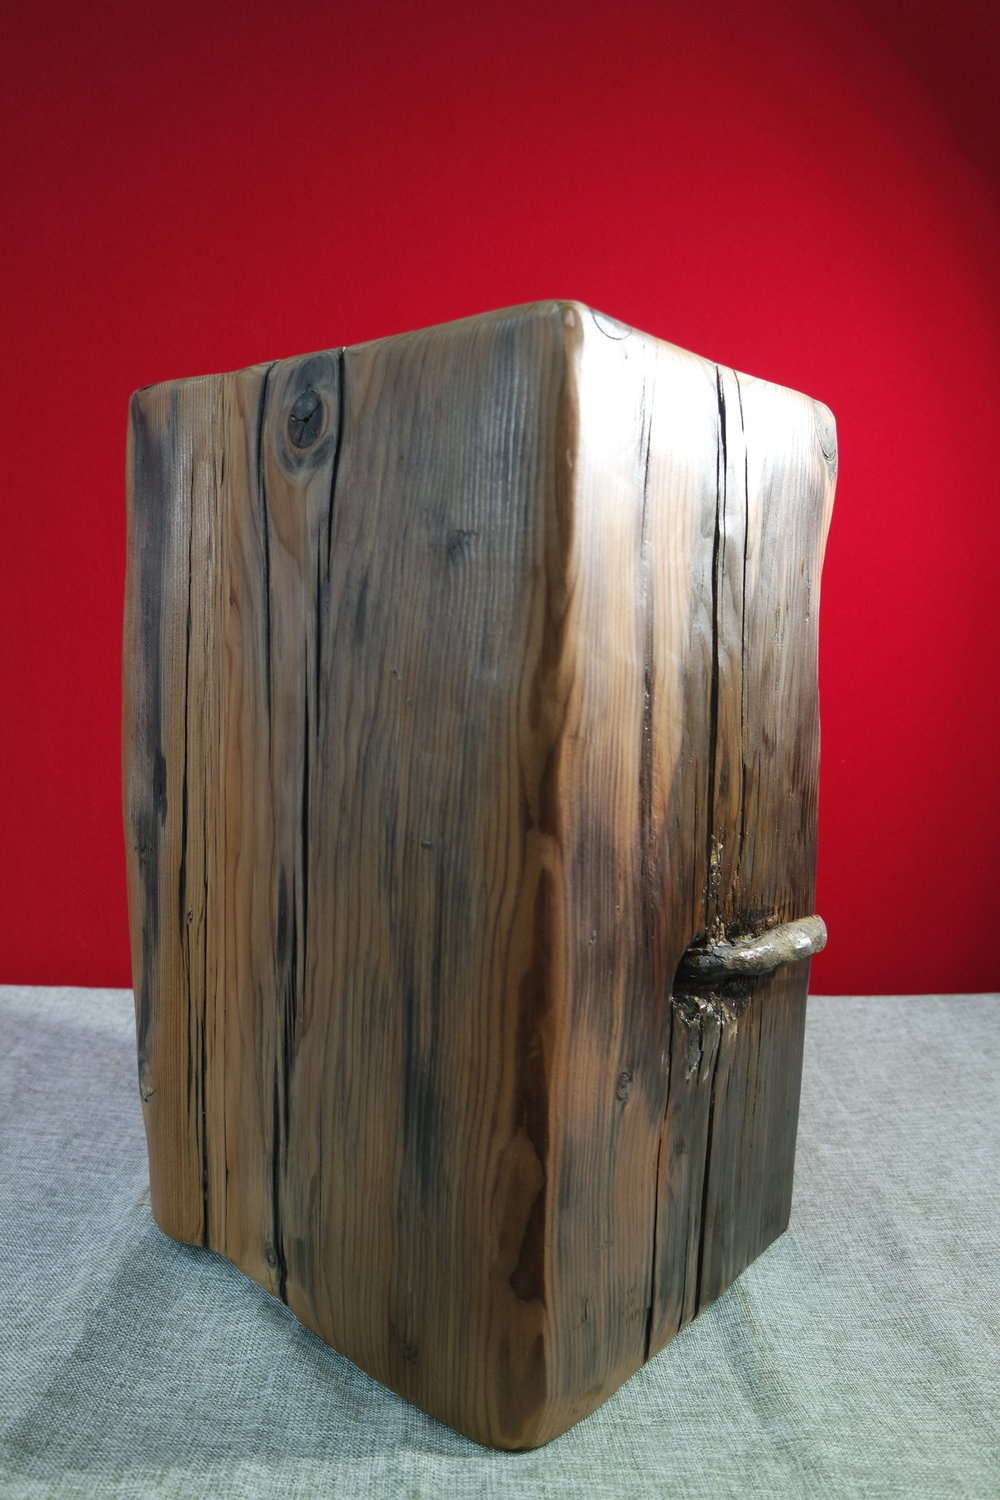 Driftwood Stool with Iron Bolt No I (26).JPG